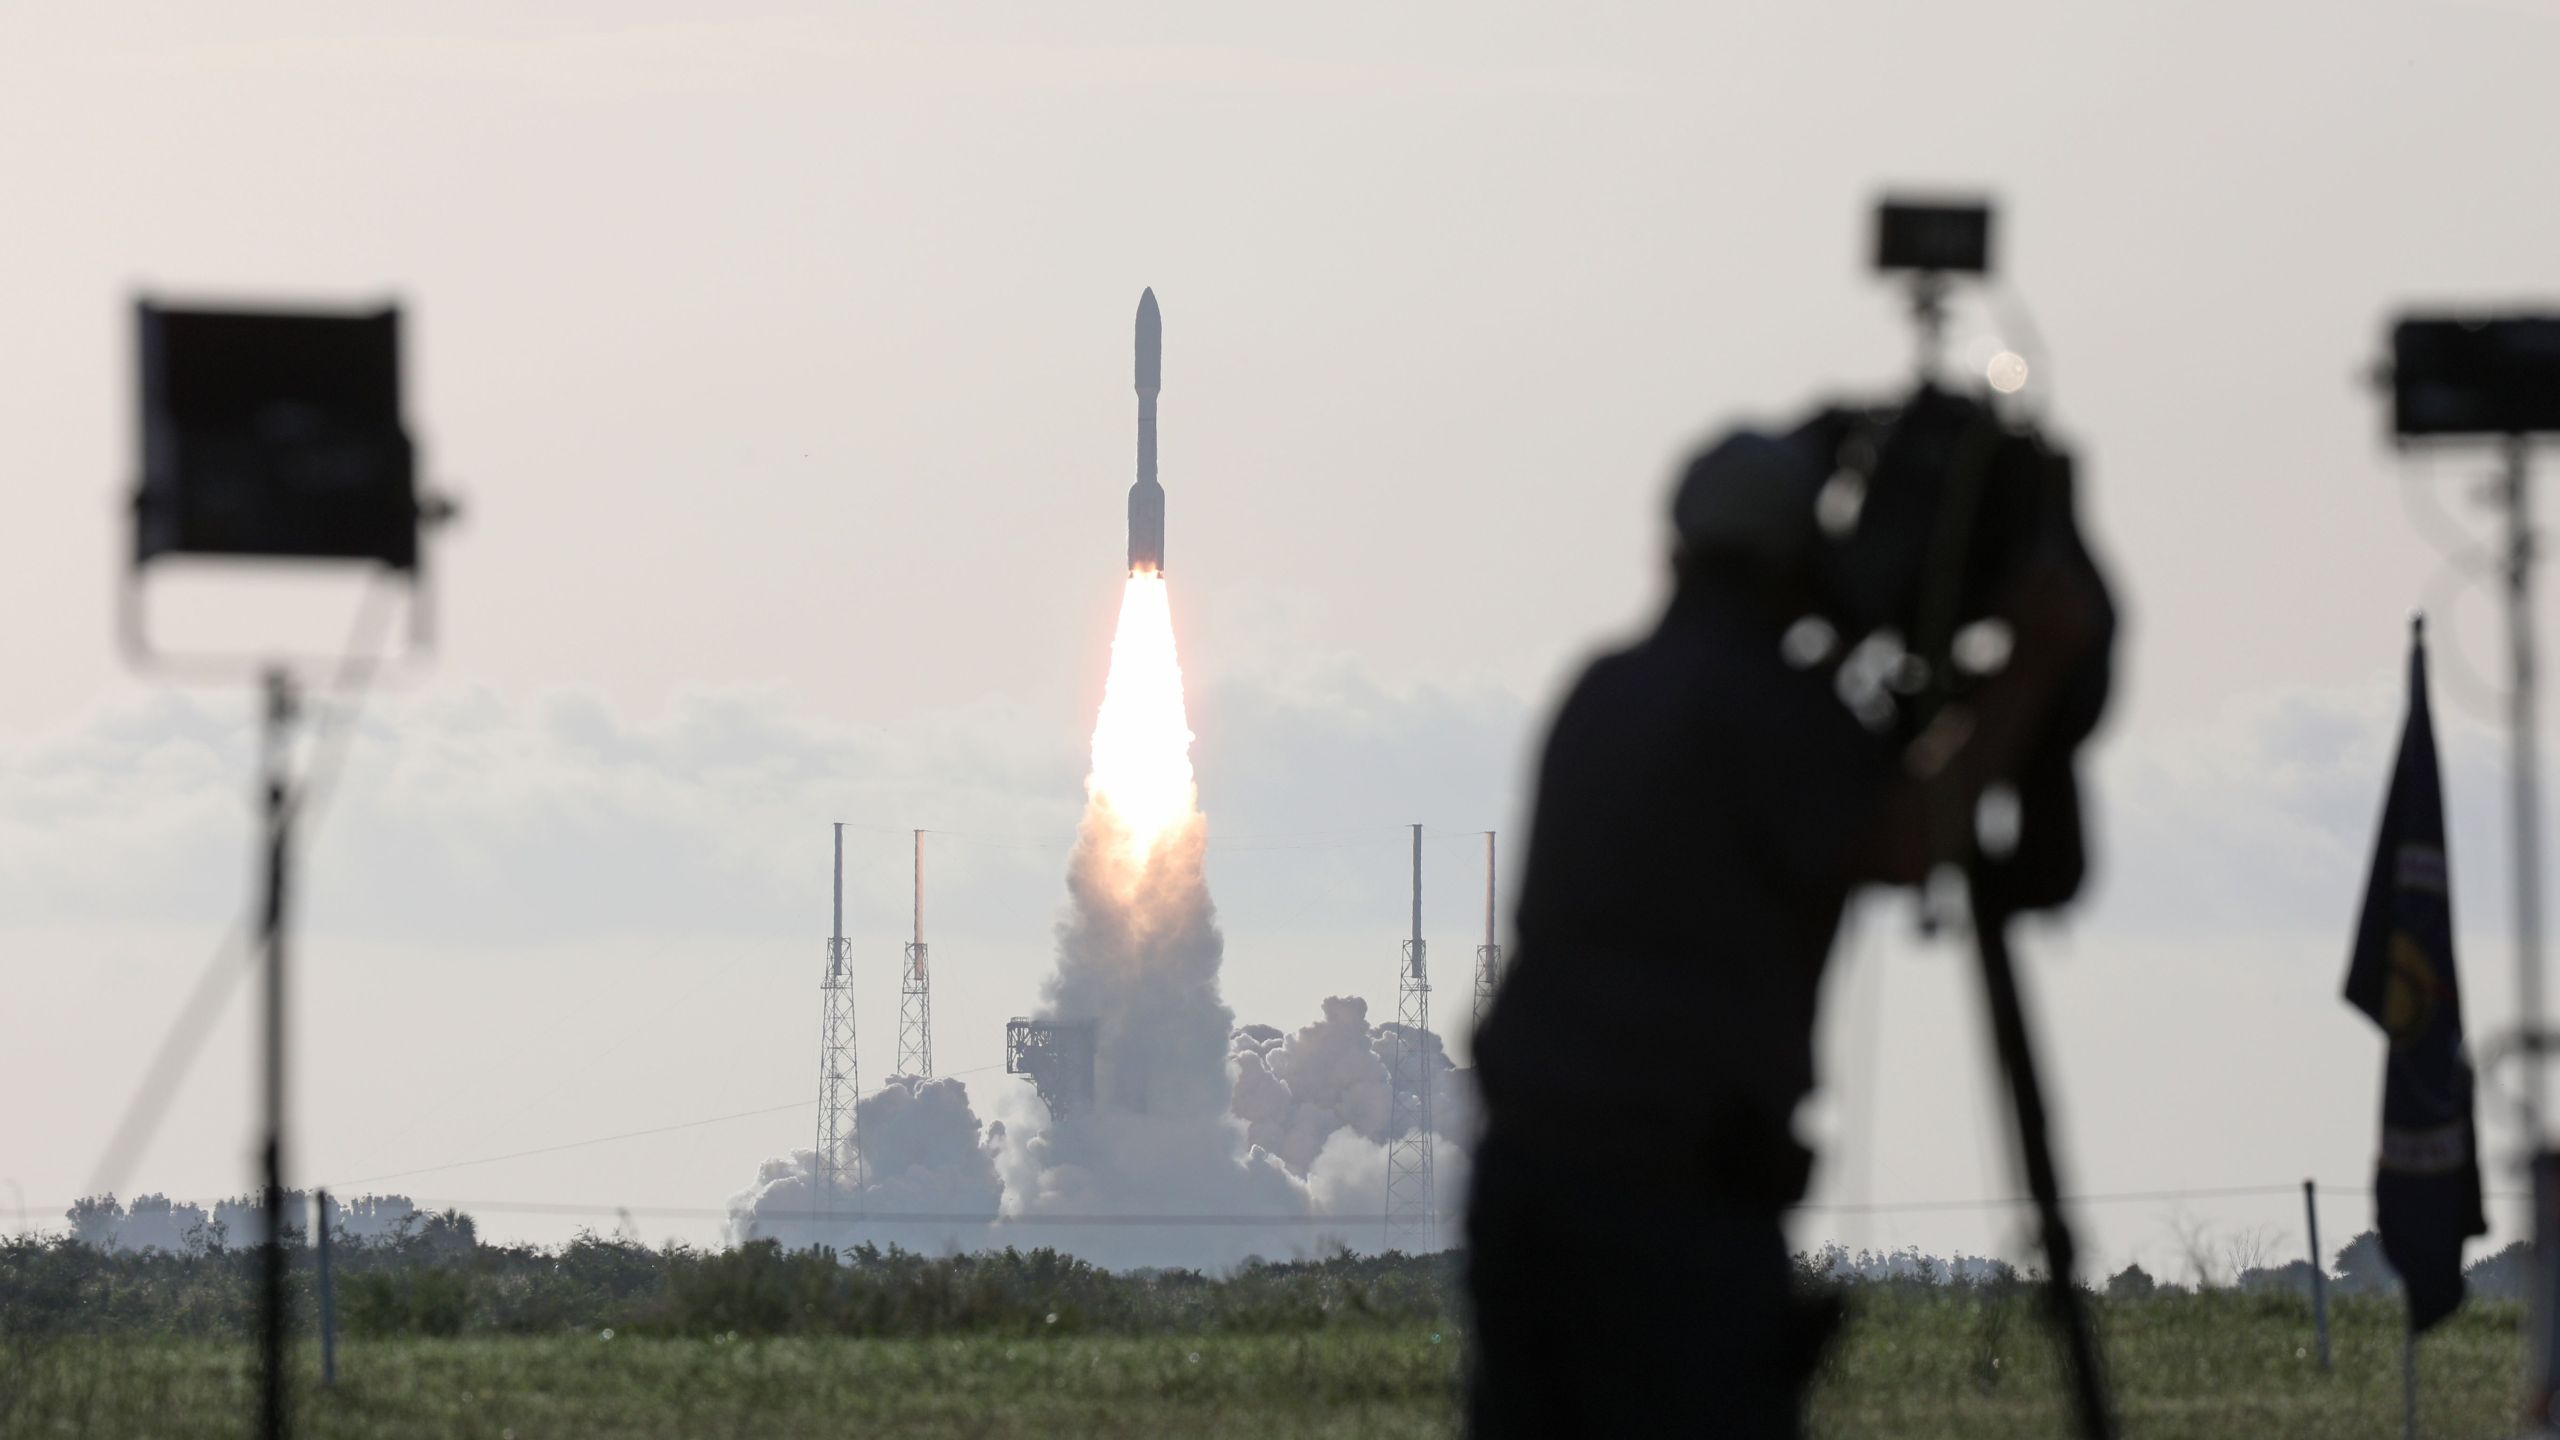 An Atlas V rocket with the Perseverance rover lifts off from Launch Complex 41 at Cape Canaveral Air Force Station in Florida on July 30, 2020. (GREGG NEWTON/AFP via Getty Images)